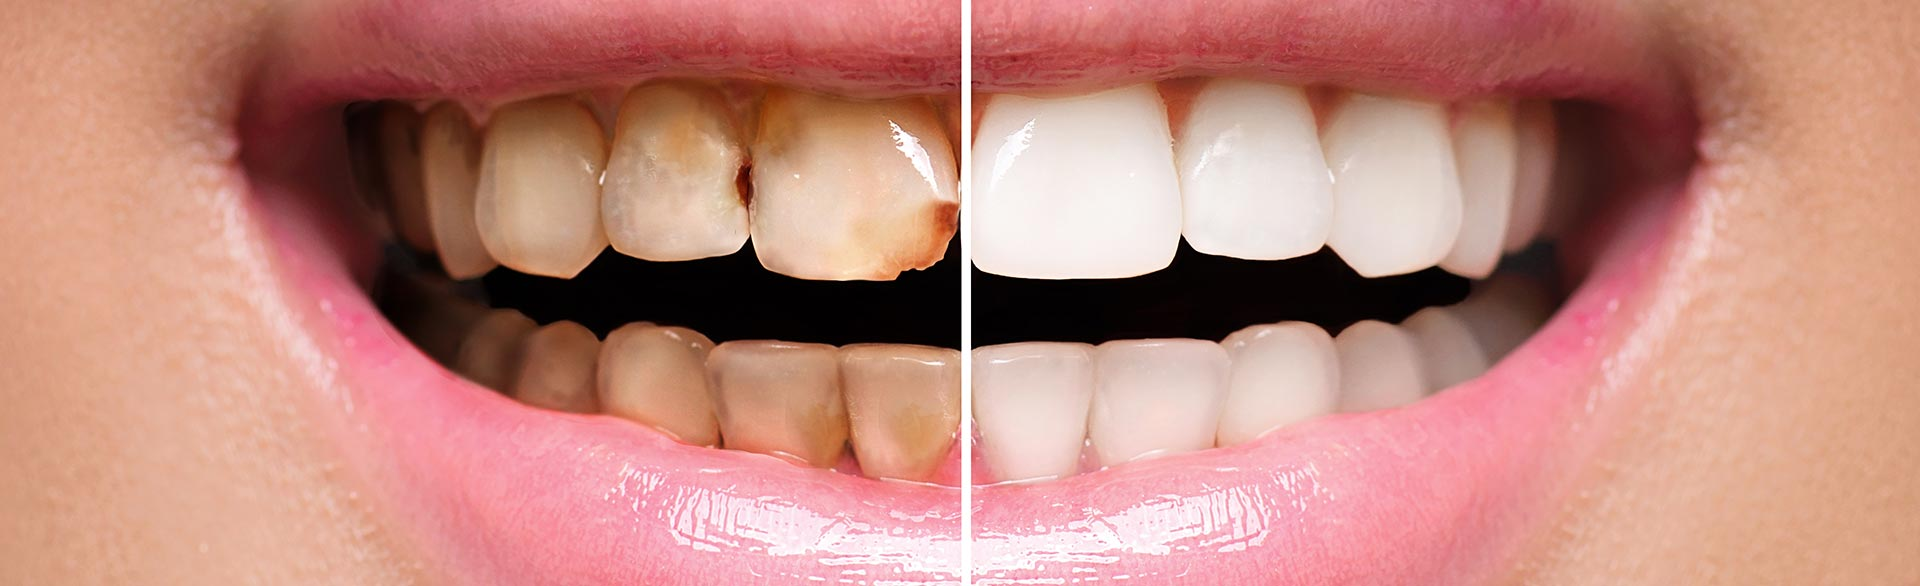 Restore your Dental Health and Appearance with a Complete Smile Makeover